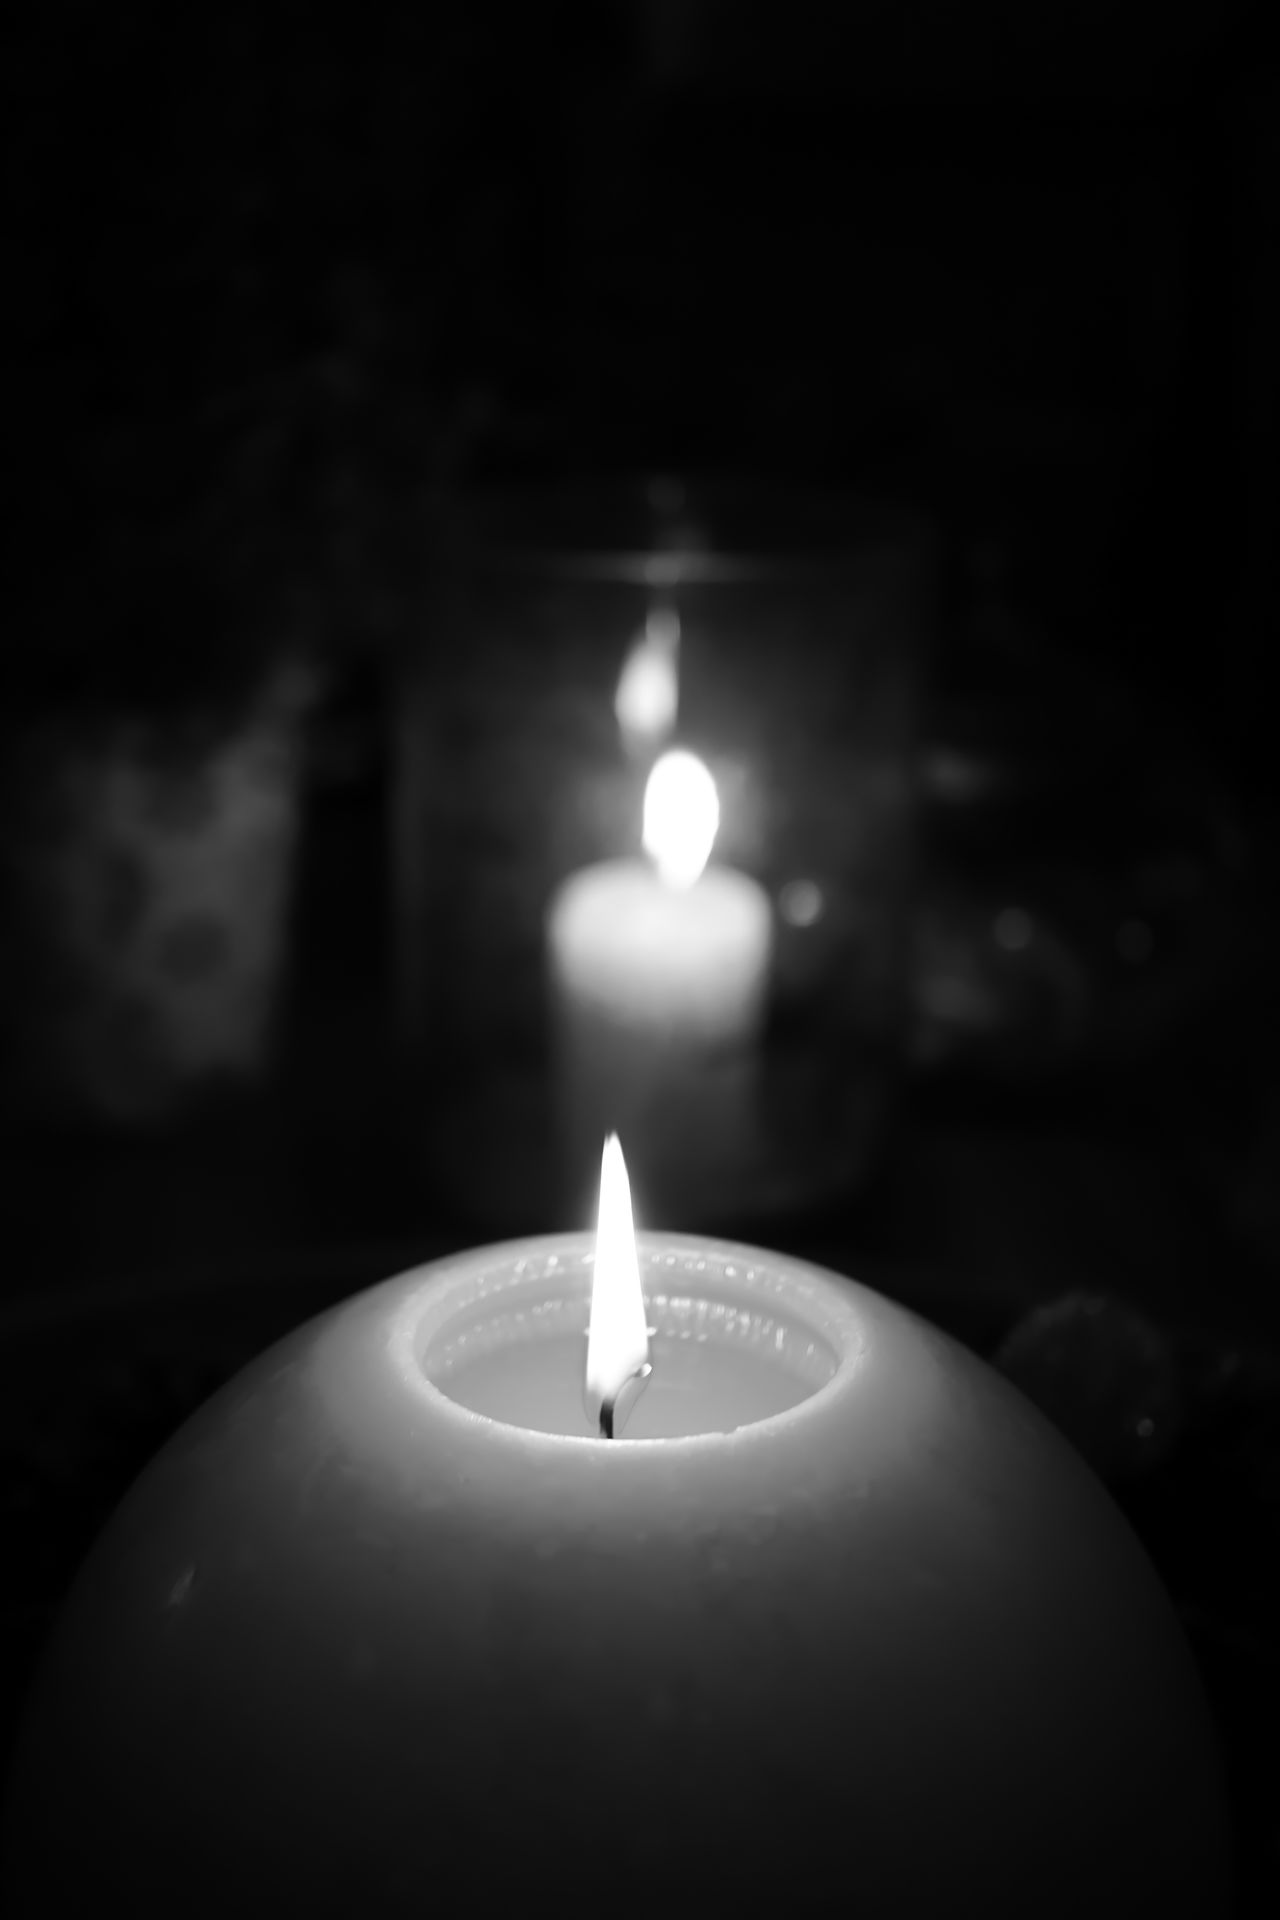 Flame Candle Burning Focus On Foreground Heat - Temperature Close-up Illuminated Dark Indoors  Light In The Darkness Blackandwhite Black & White Black And White Candles Candle Light